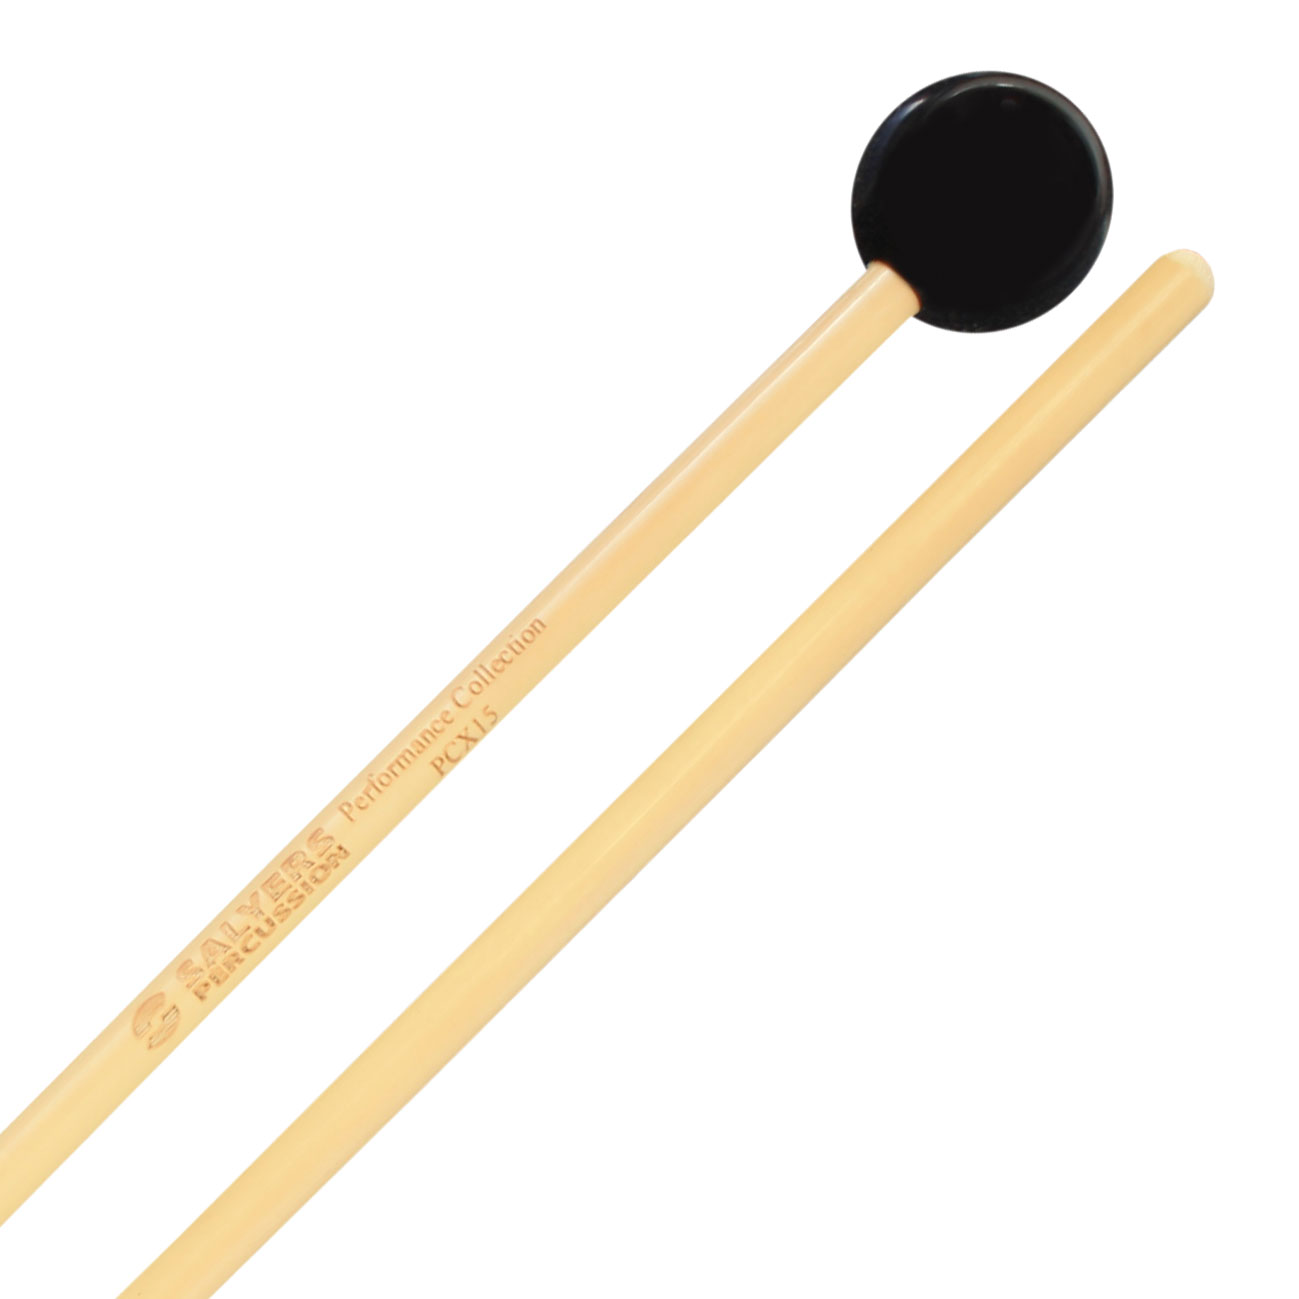 "Salyers Percussion Performance Collection 1 1/8"" Phenolic Bell Mallets"